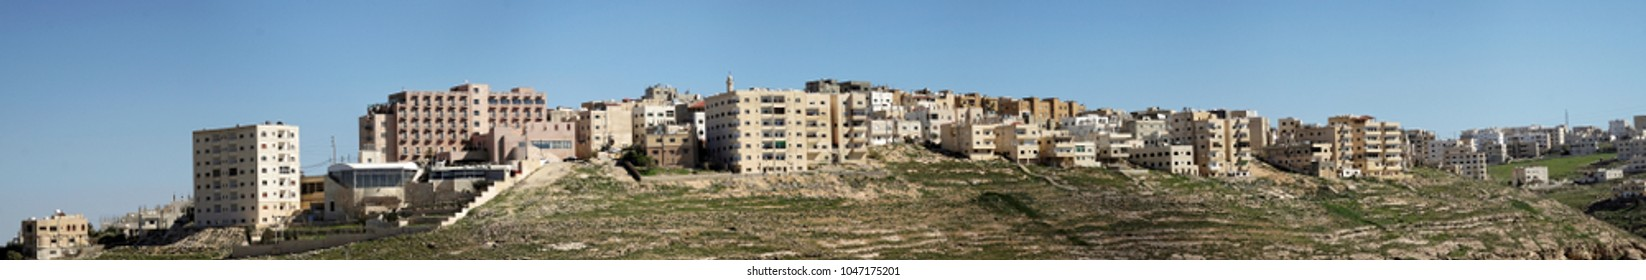 Karak, Jordan, March 10th 2018: Composite high-resolution panorama of the high-rise housing estate on the outskirts of the city of Karak in Jordan., middle east